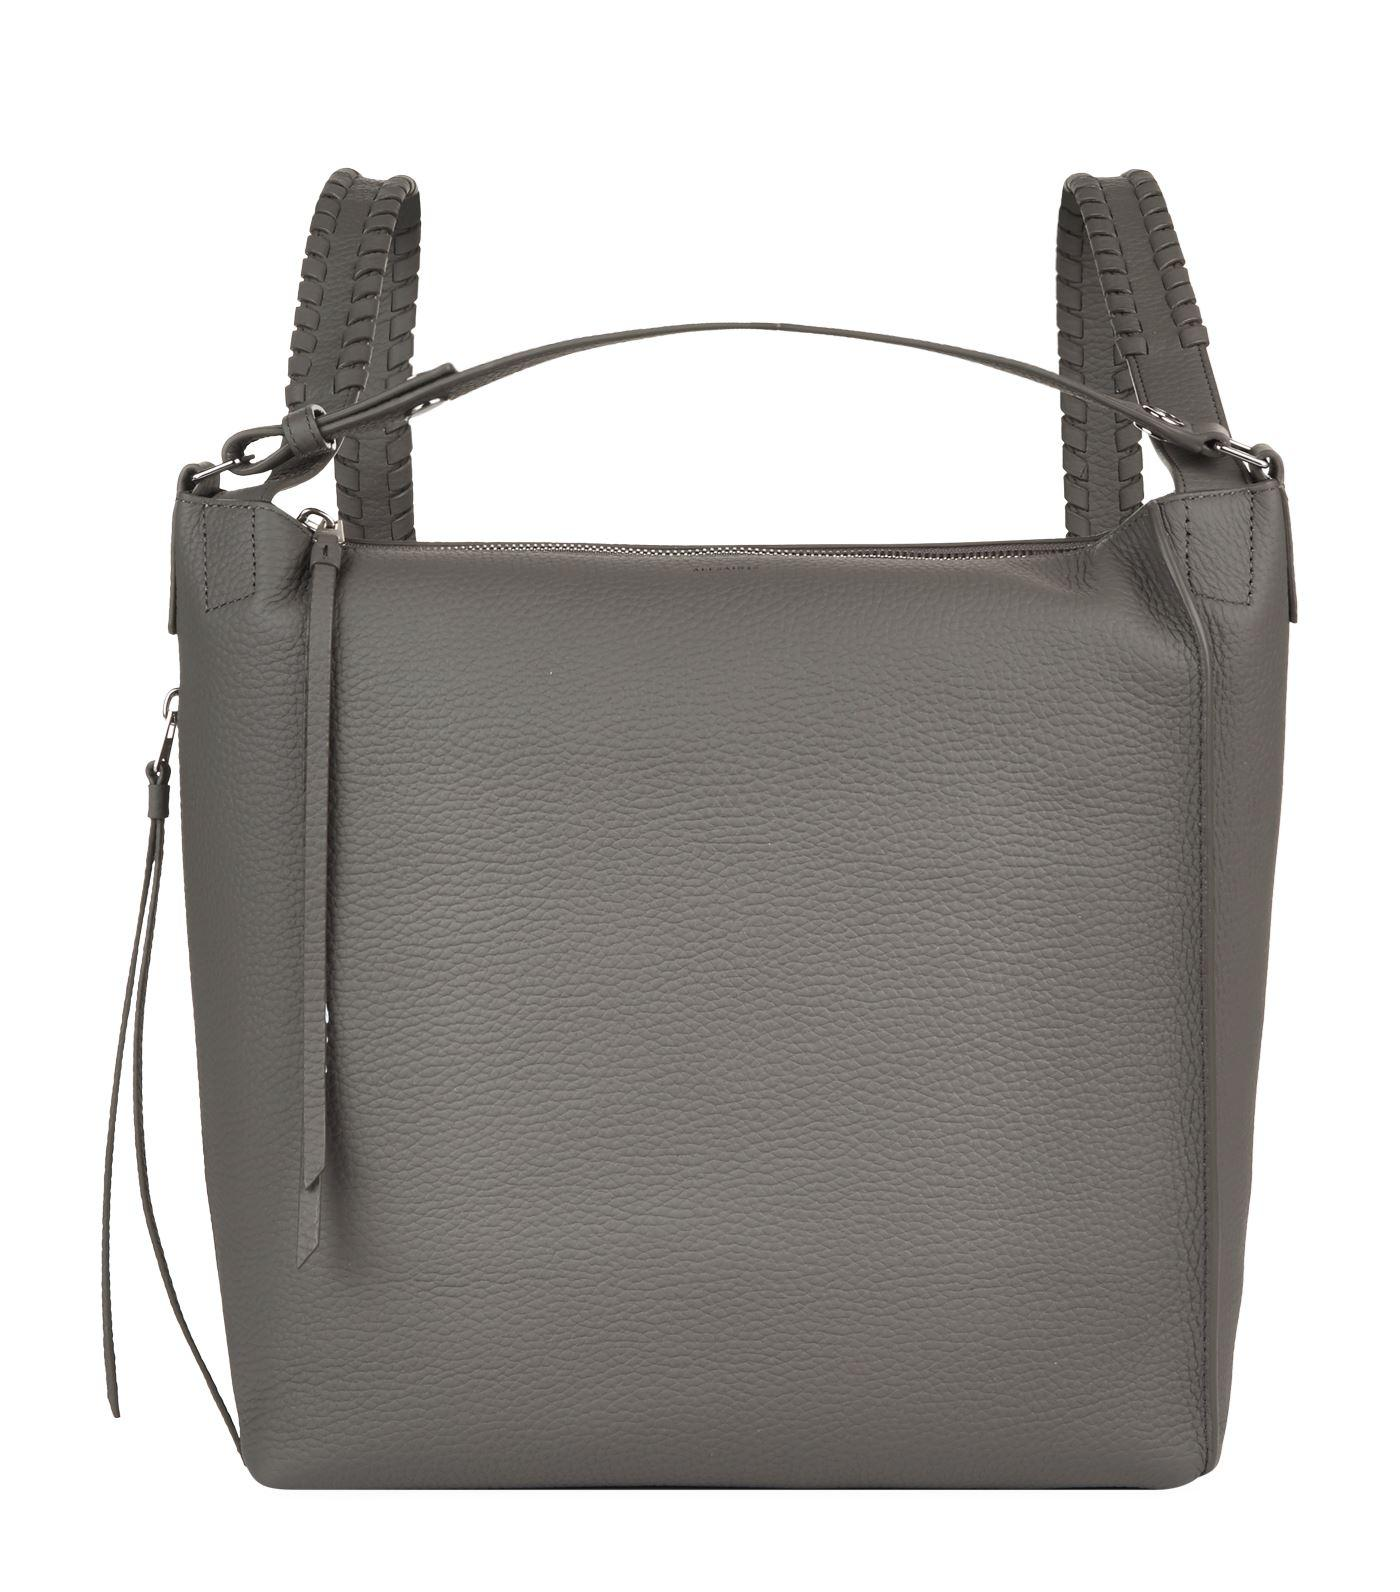 78ce657b5e Allsaints Small Leather Kita Backpack in Gray - Lyst